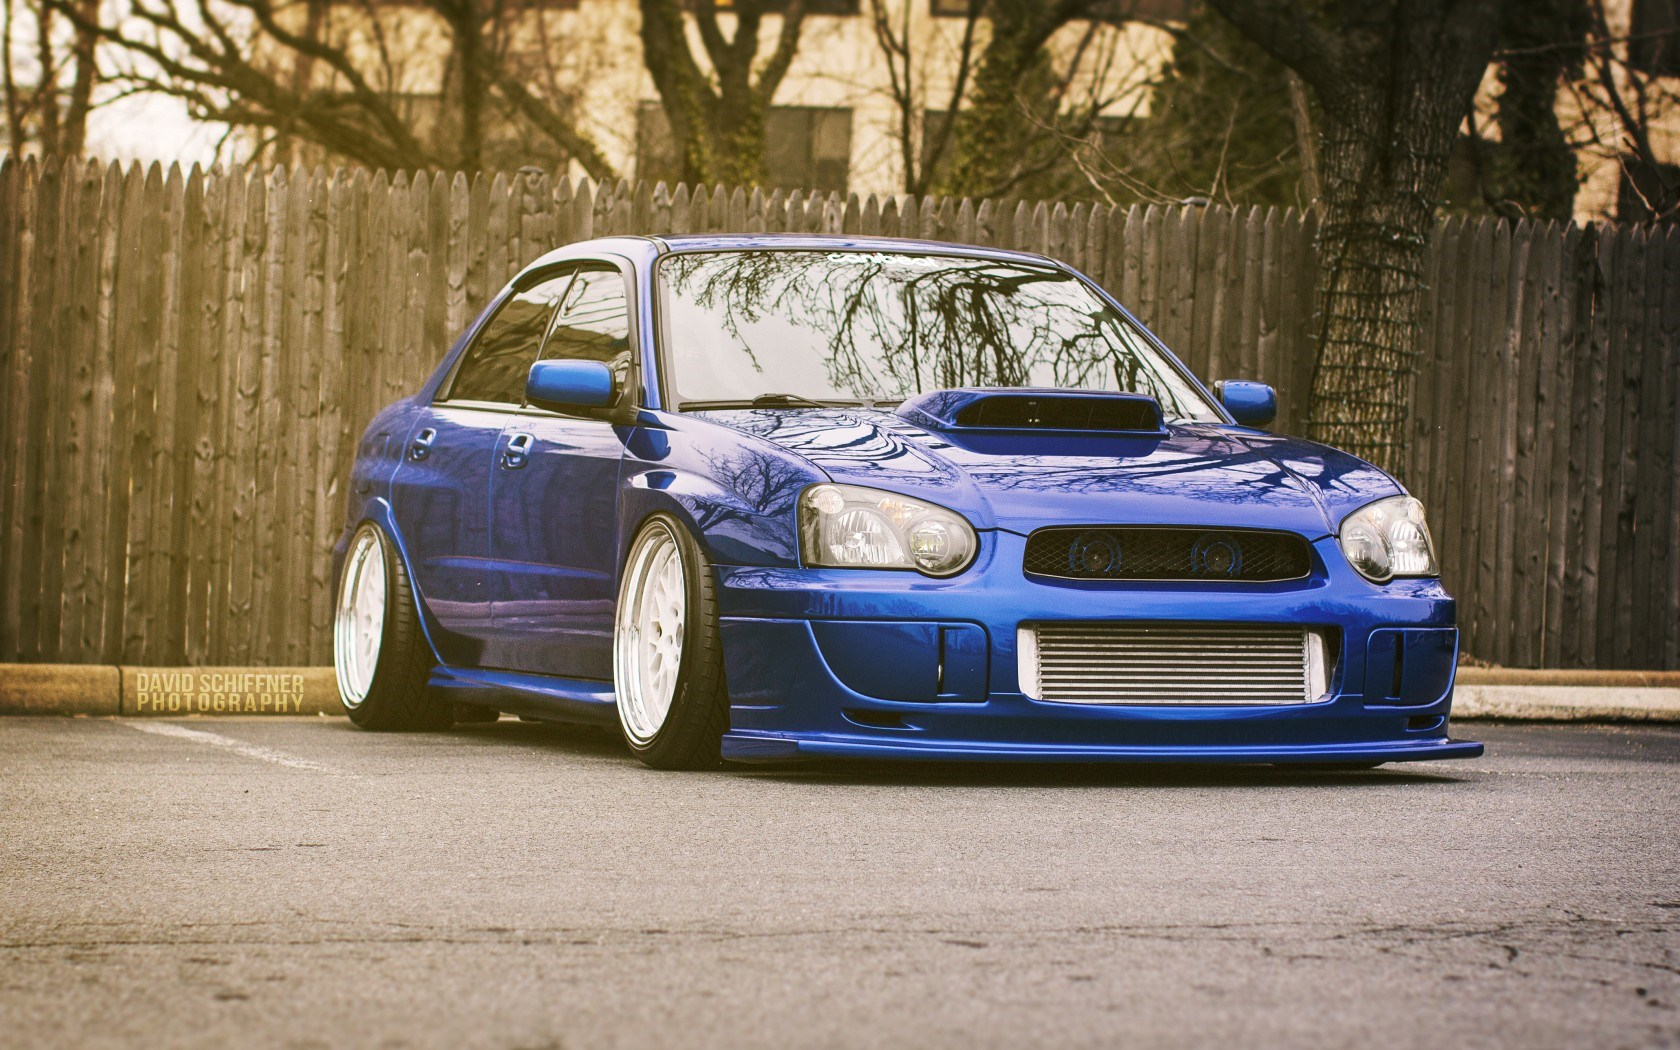 Subaru Impreza WRX STI Blue Rear Car